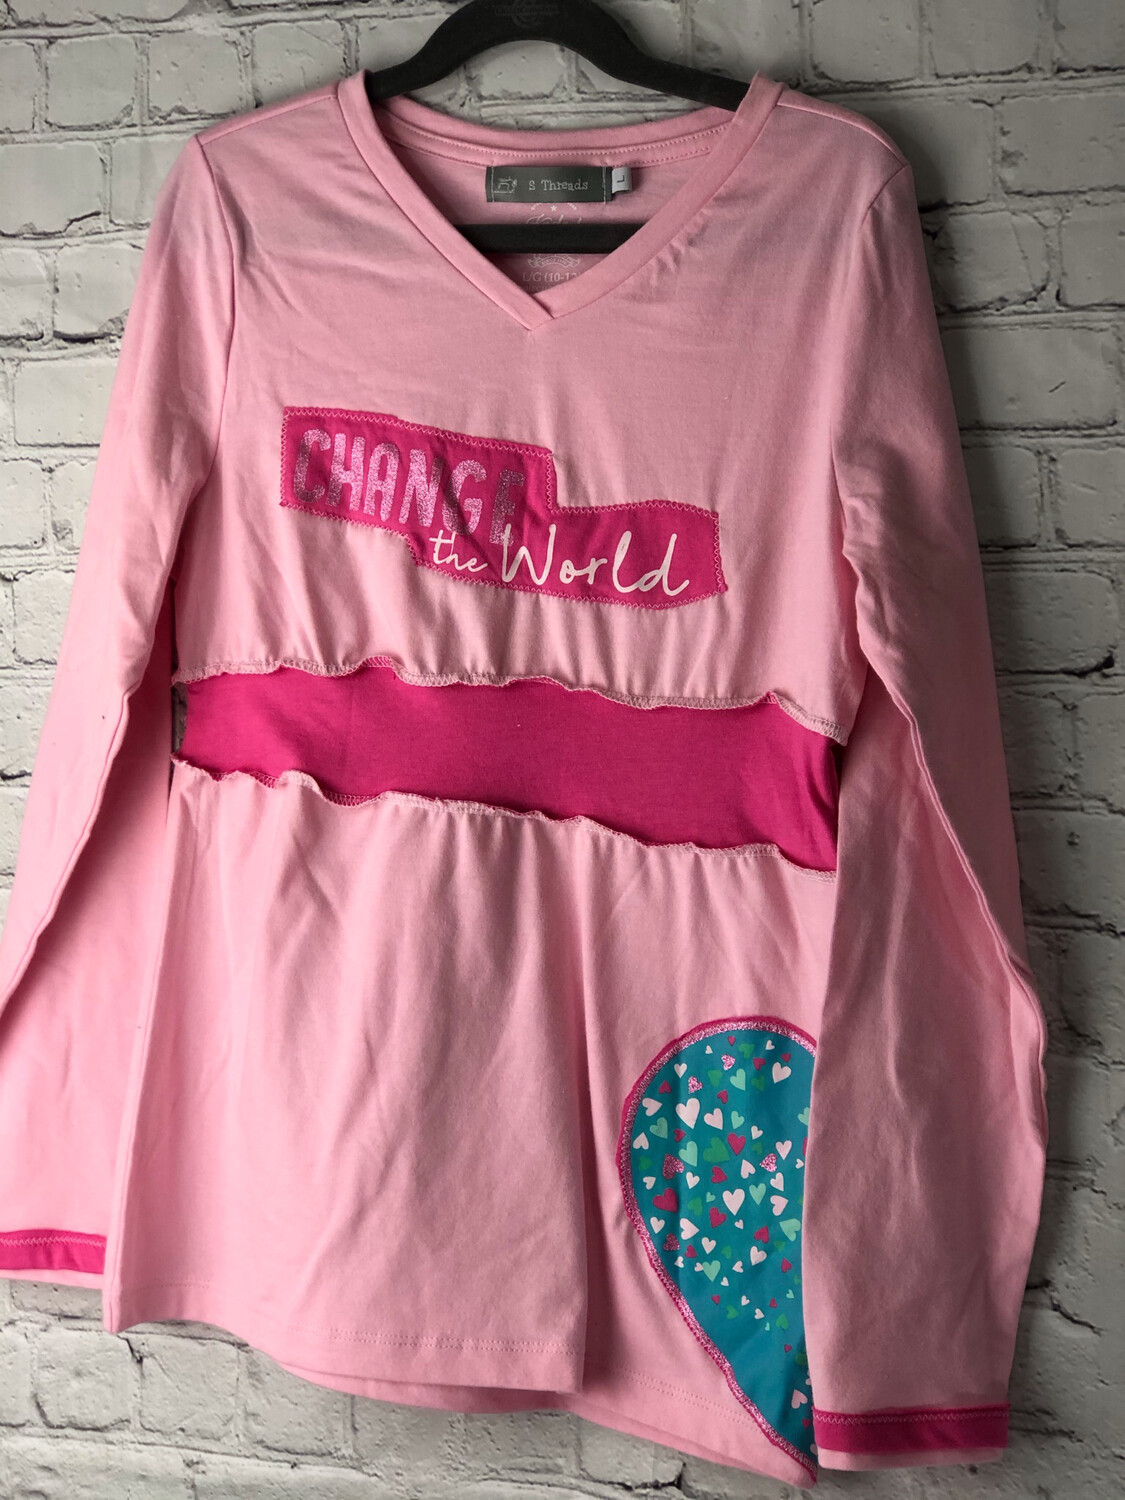 S Threads Kids Upcycled Repurposed Pink Heart Change The World Long Sleeve Cotton Dress Size Child Large